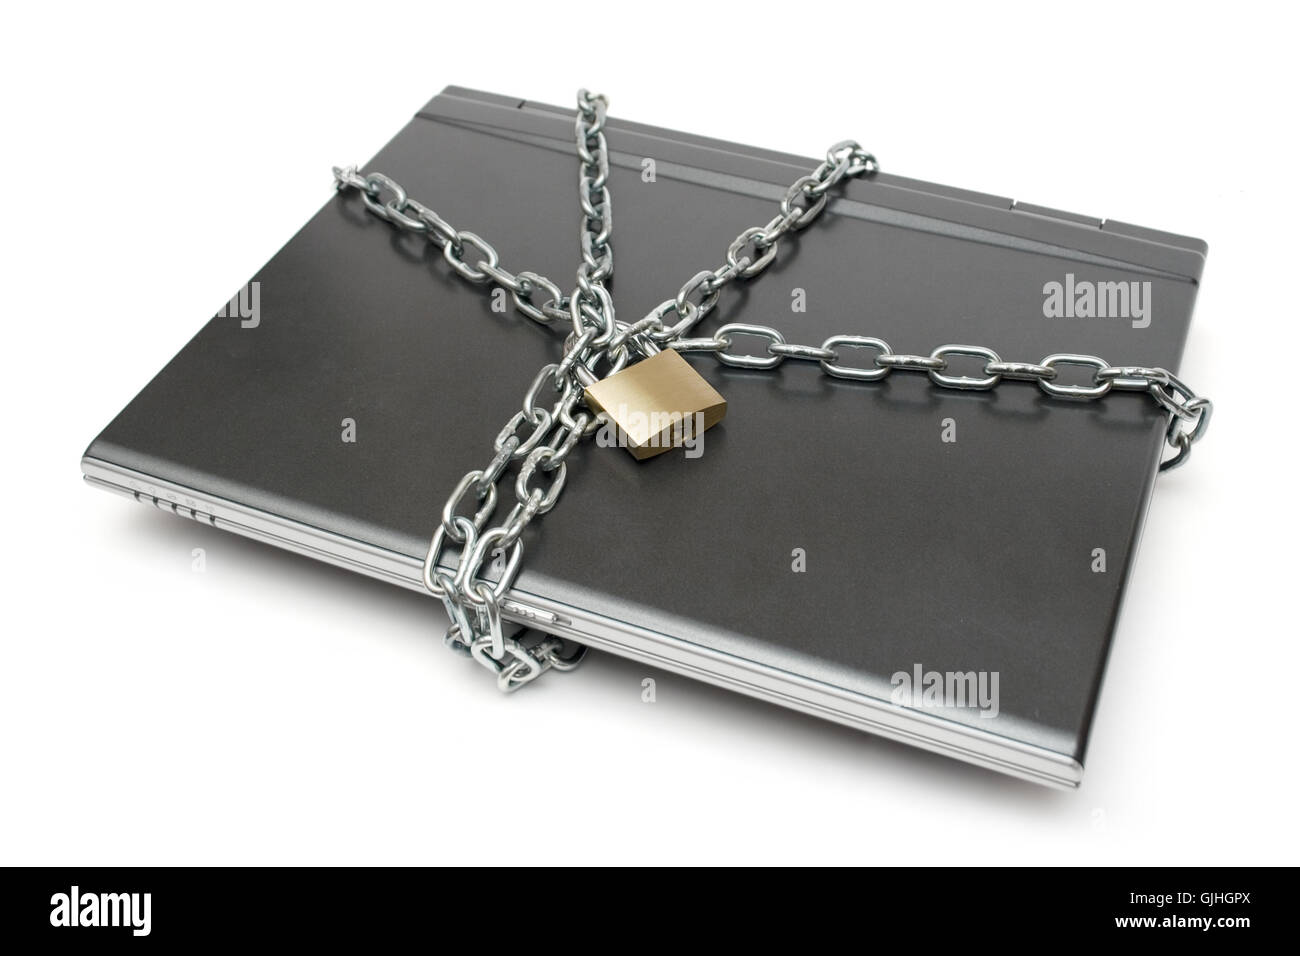 data theft - Stock Image